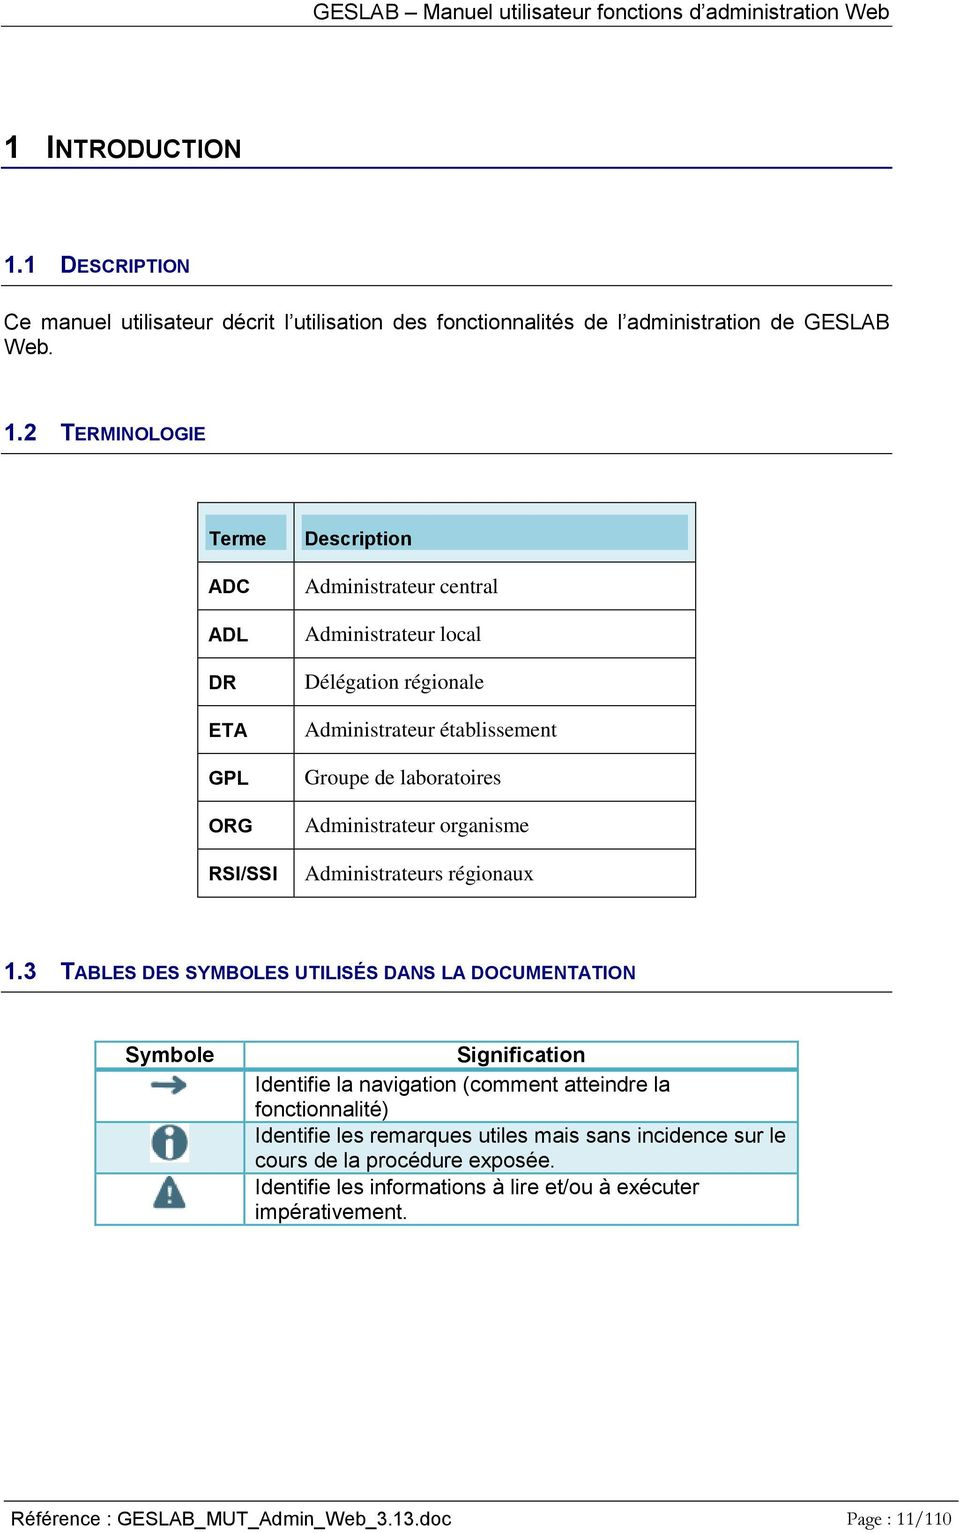 2 TERMINOLOGIE Terme ADC ADL DR ETA GPL ORG RSI/SSI Description Administrateur central Administrateur local Délégation régionale Administrateur établissement Groupe de